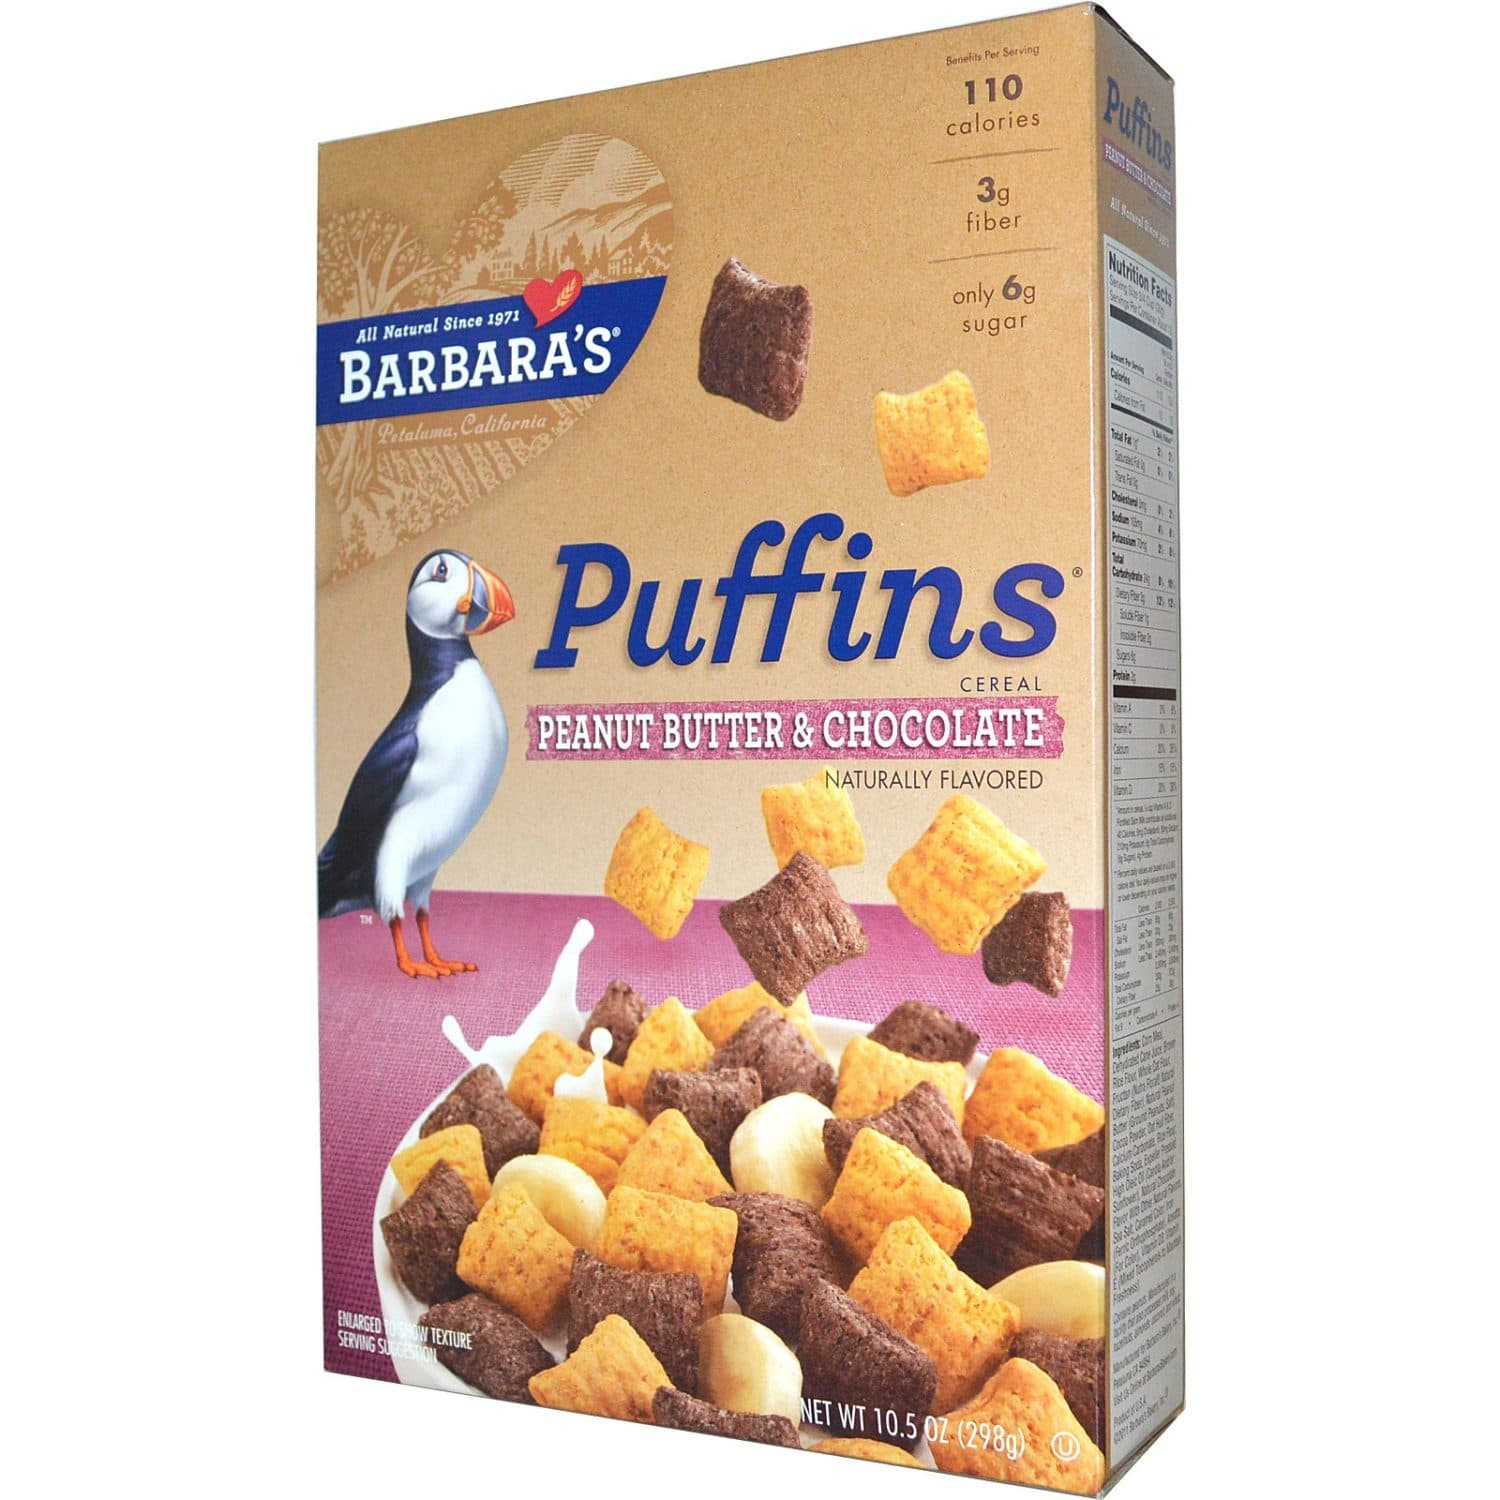 Puffins Peanut Butter And Chocolate Cereal From Barbara's